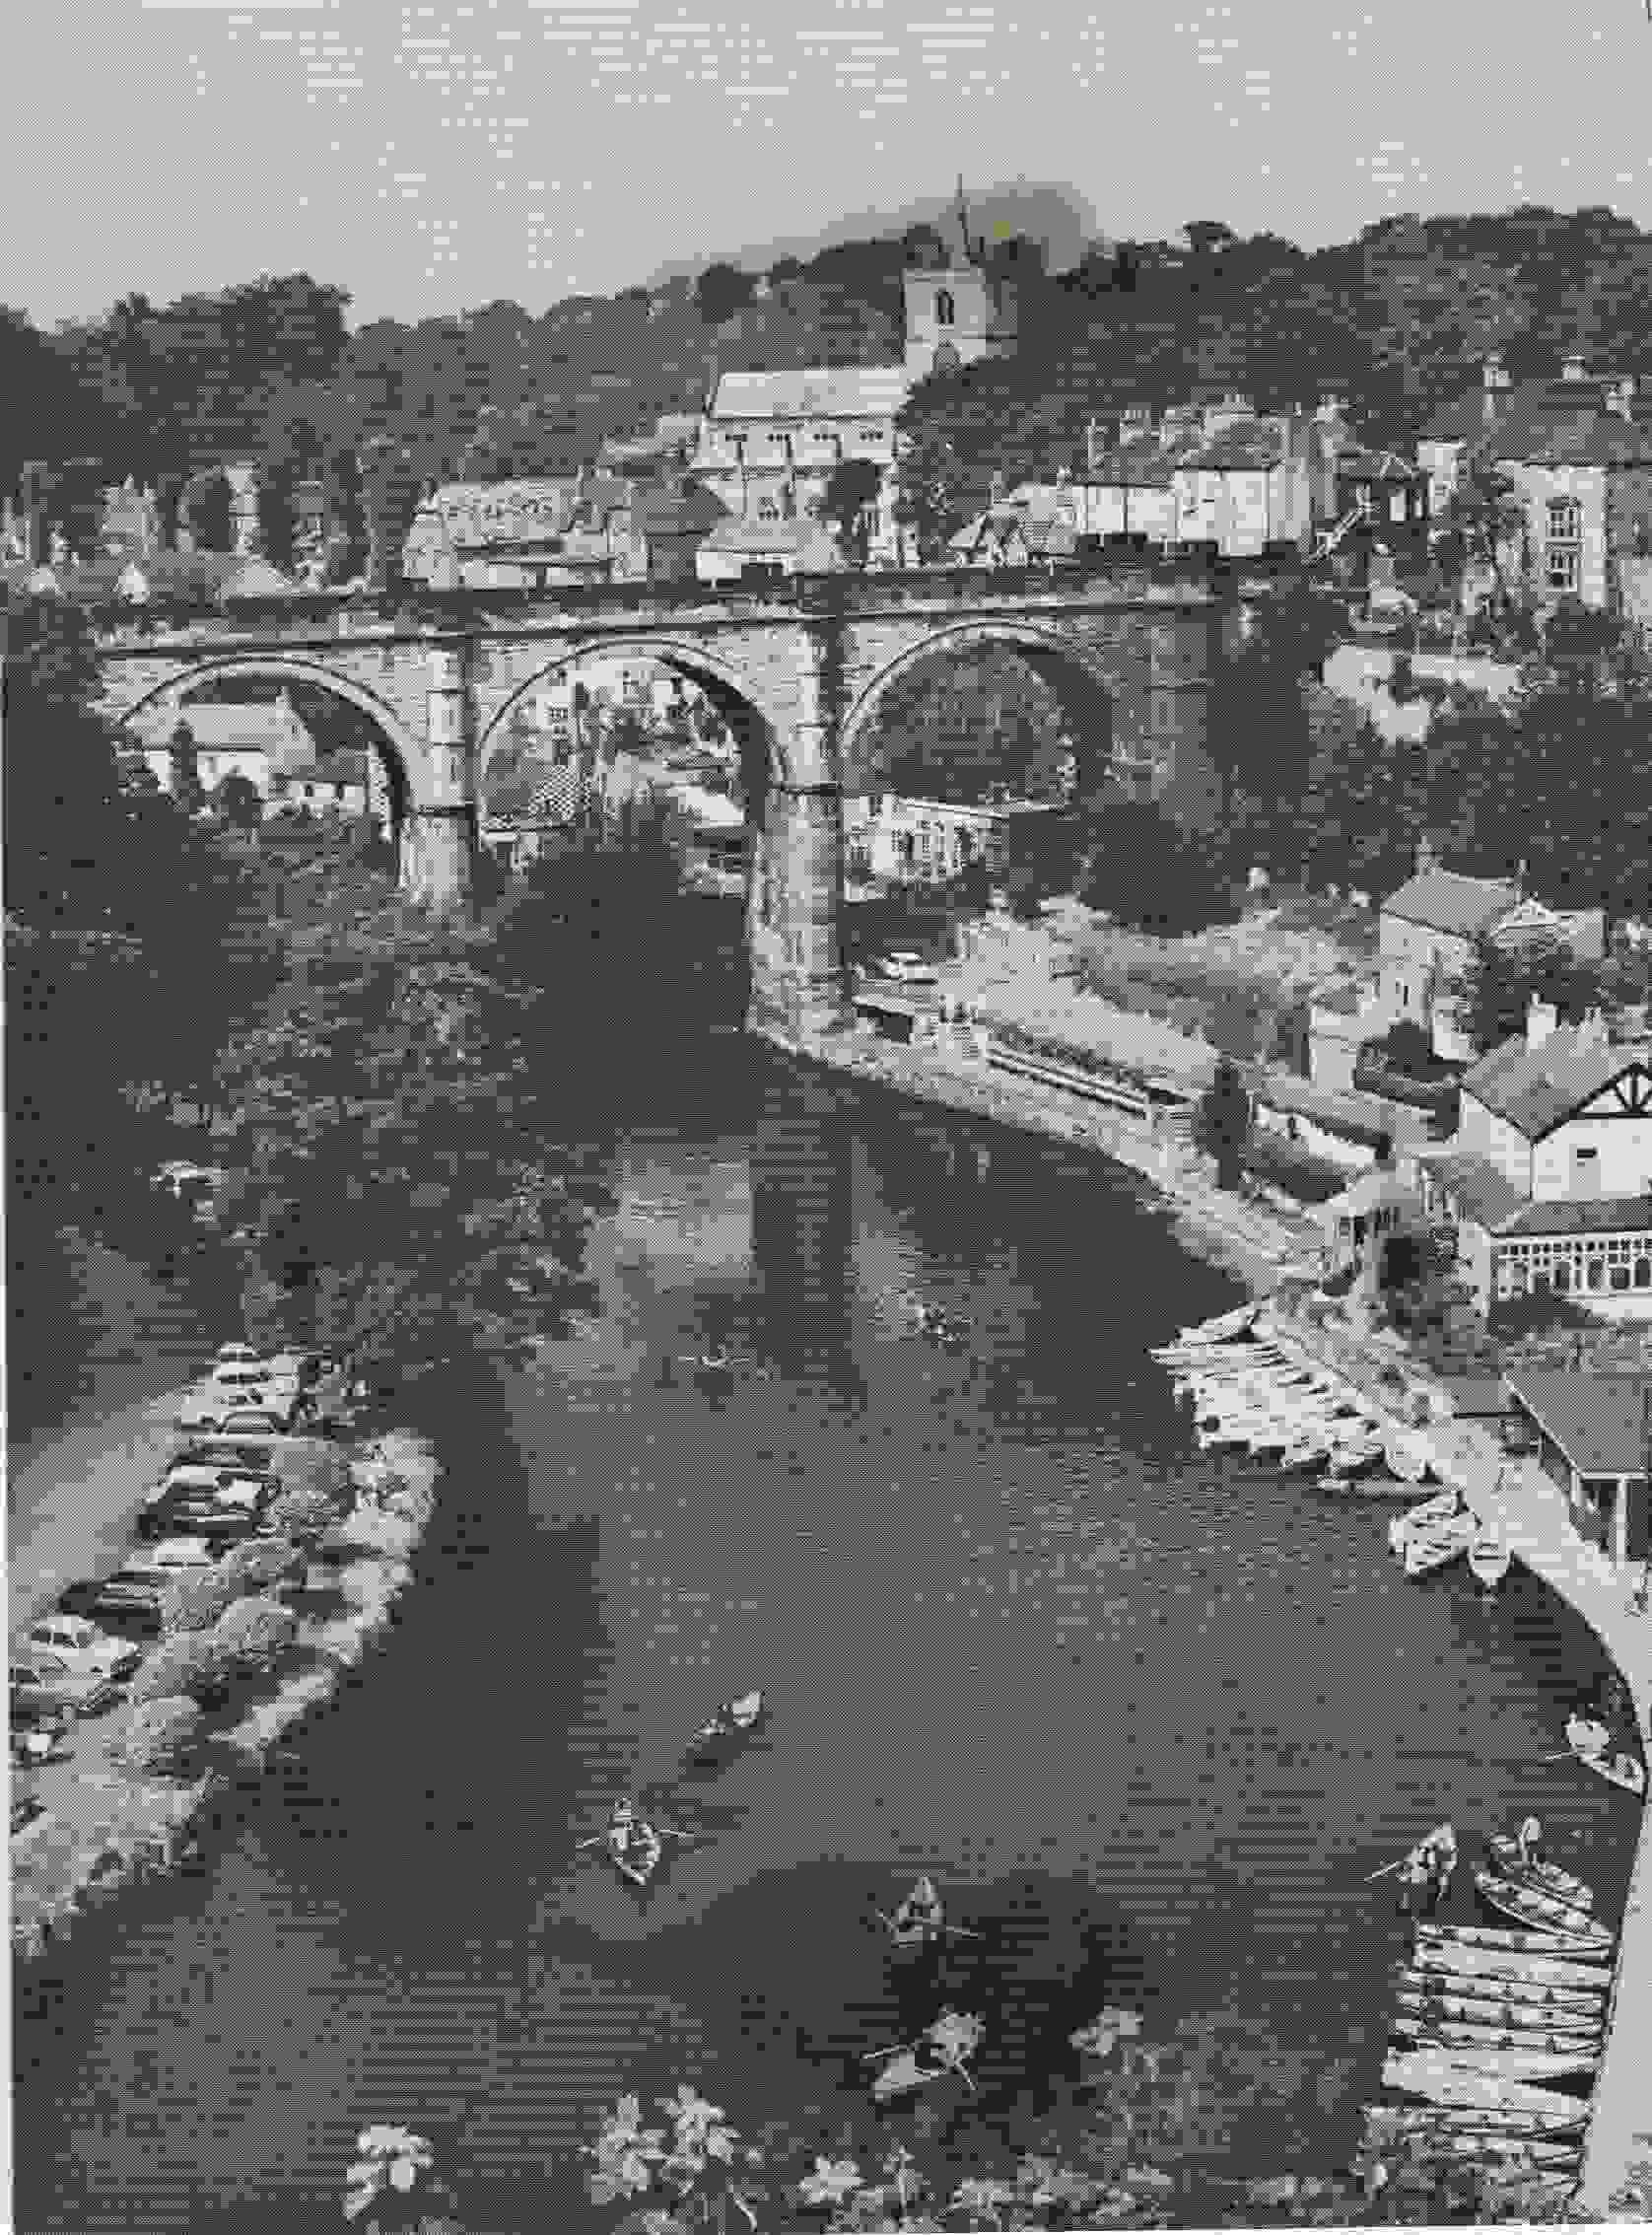 knaresborough.jpg - 182.01 kB